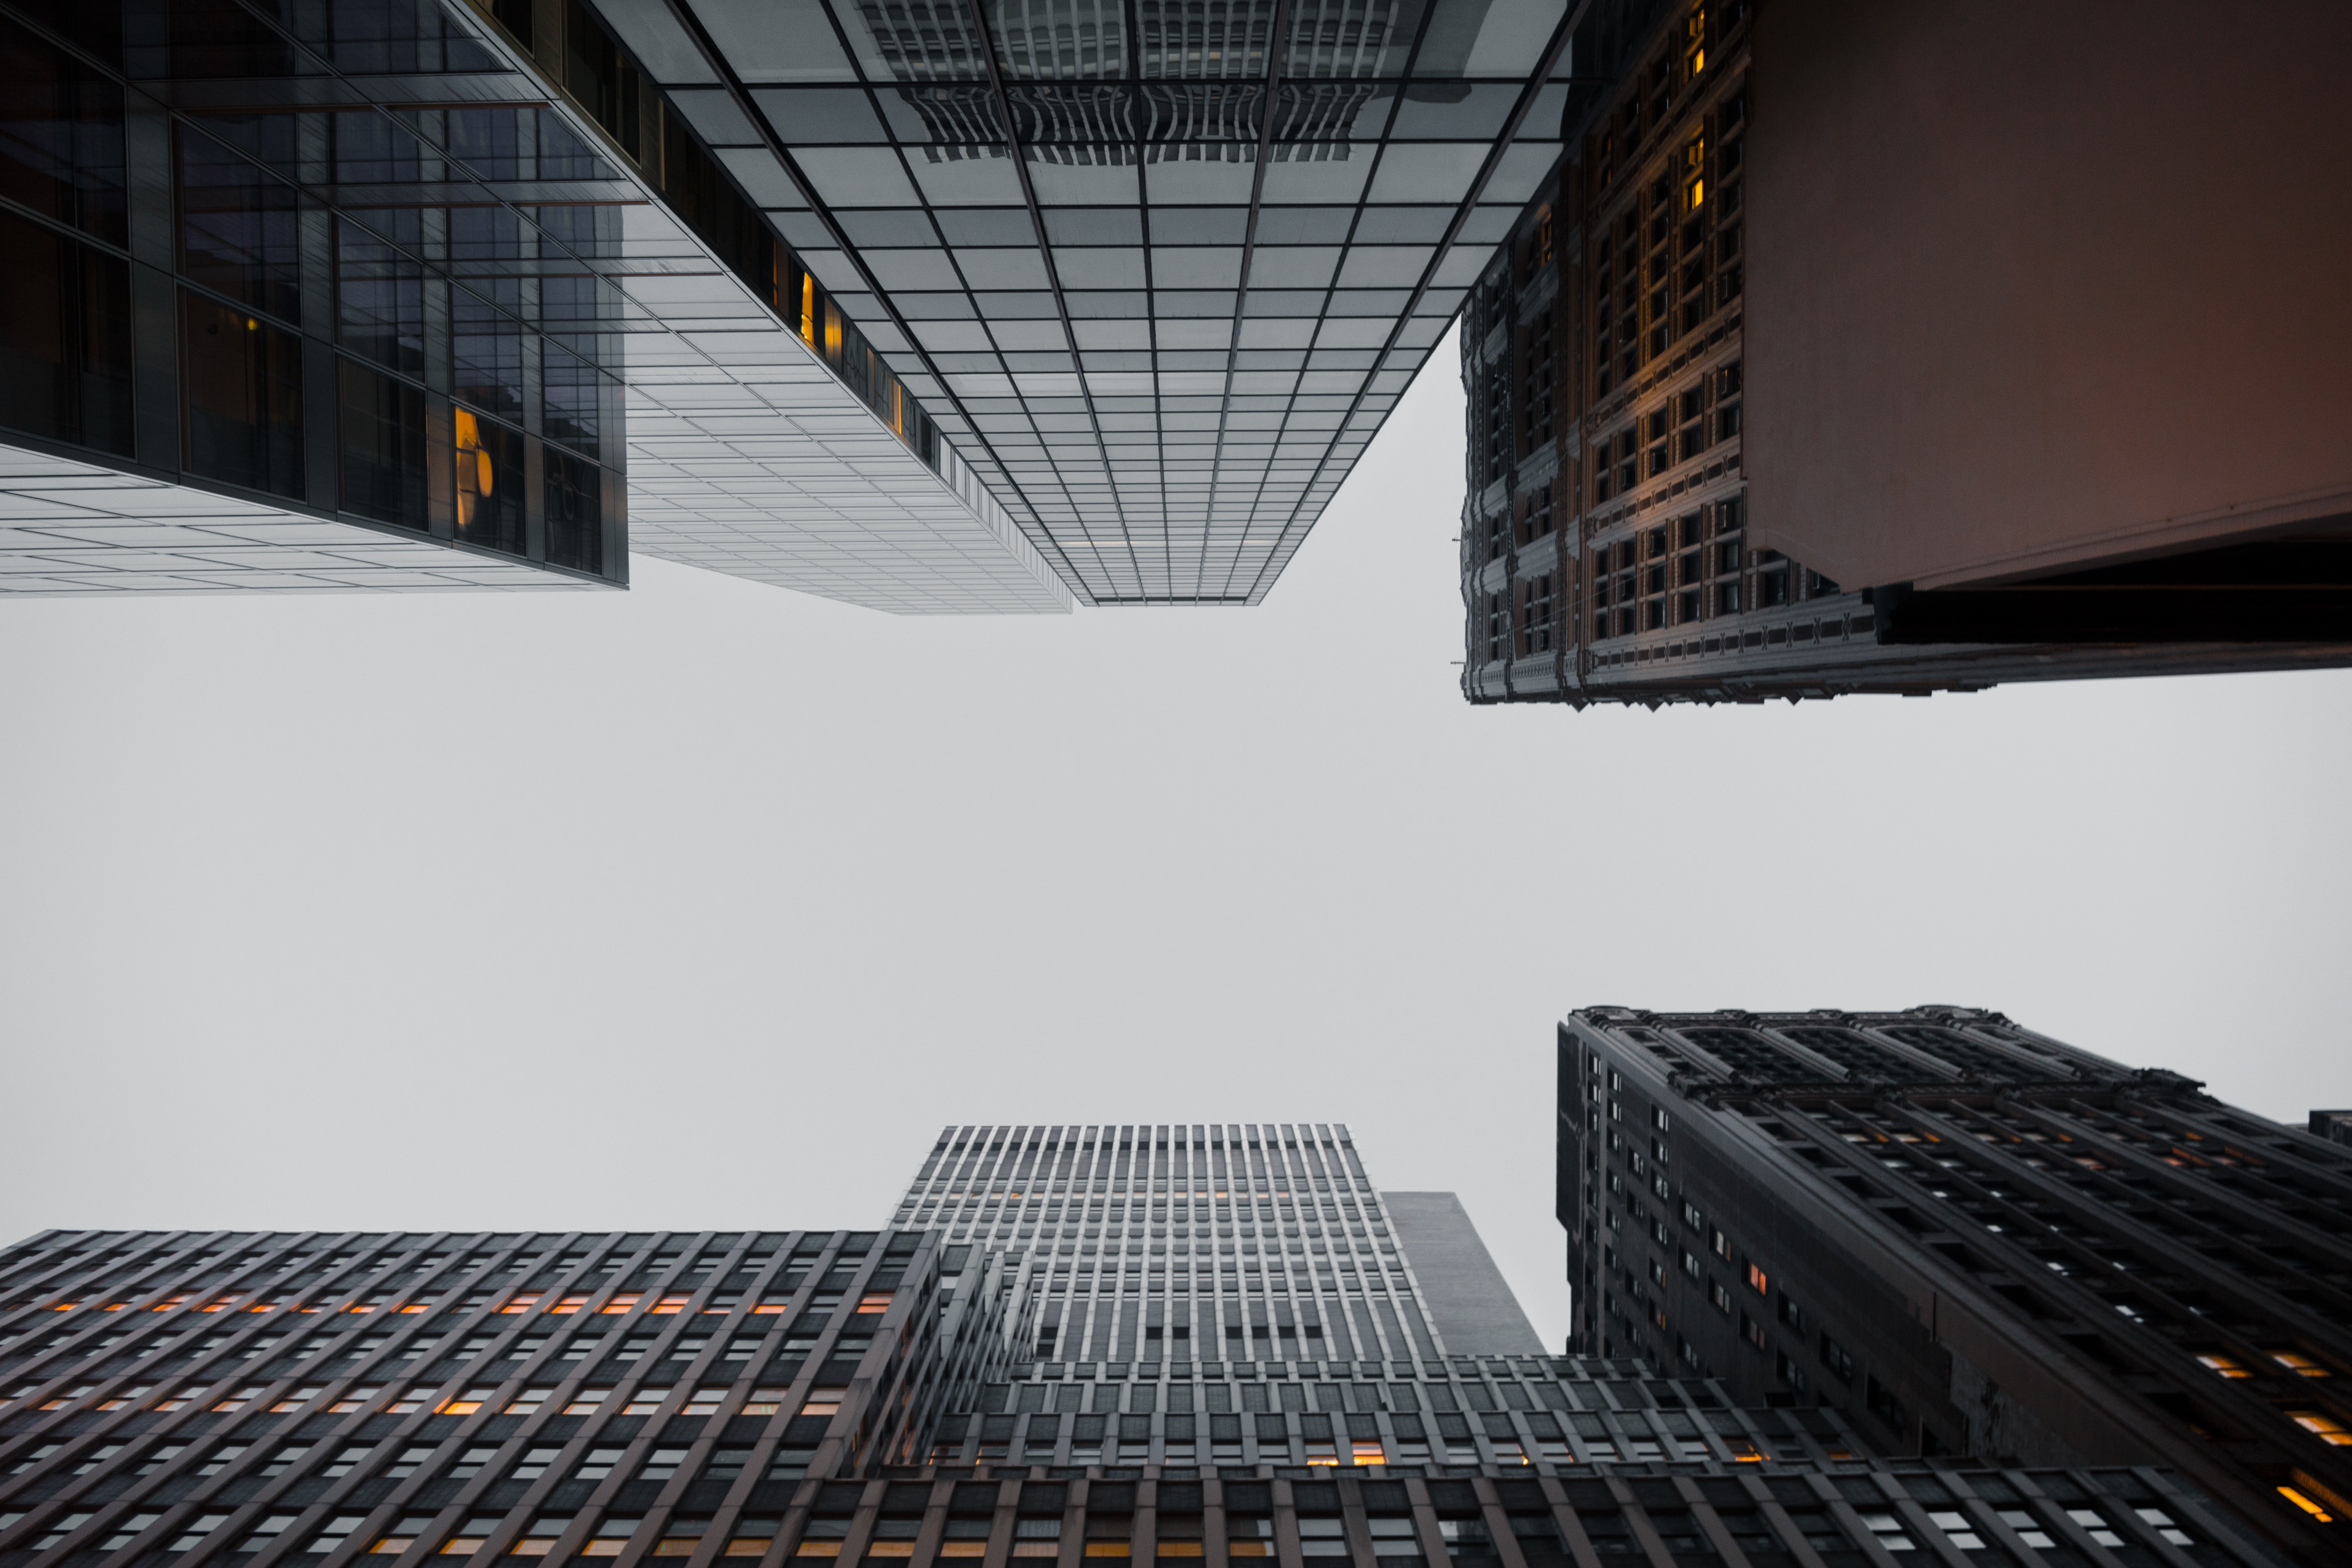 A low-angle shot of an overcast sky over skyscrapers in Manhattan